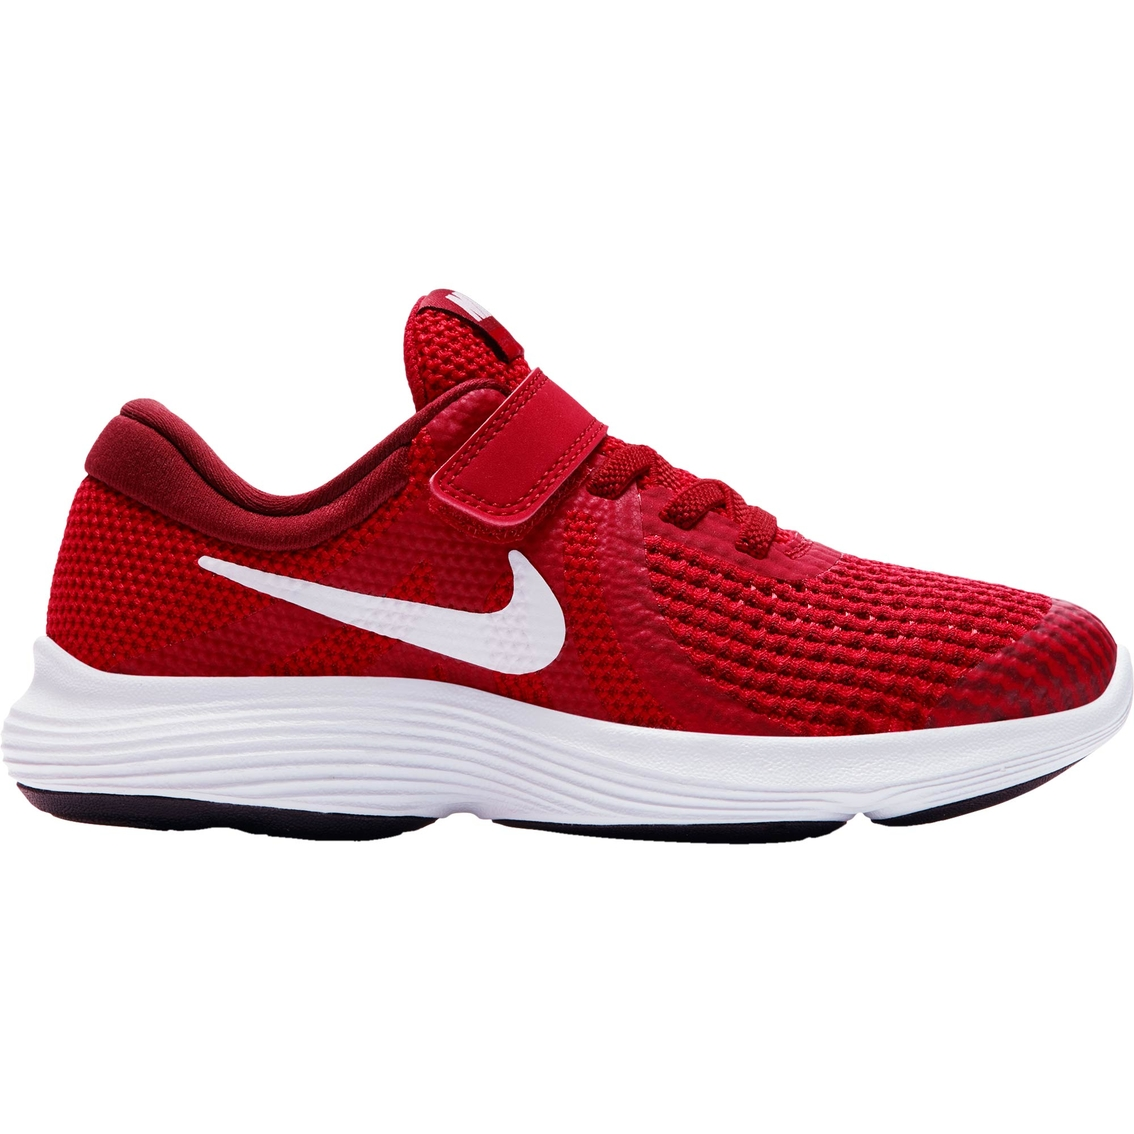 1ce3ac16a791 Nike Preschool Boys Revolution 4 Running Shoes